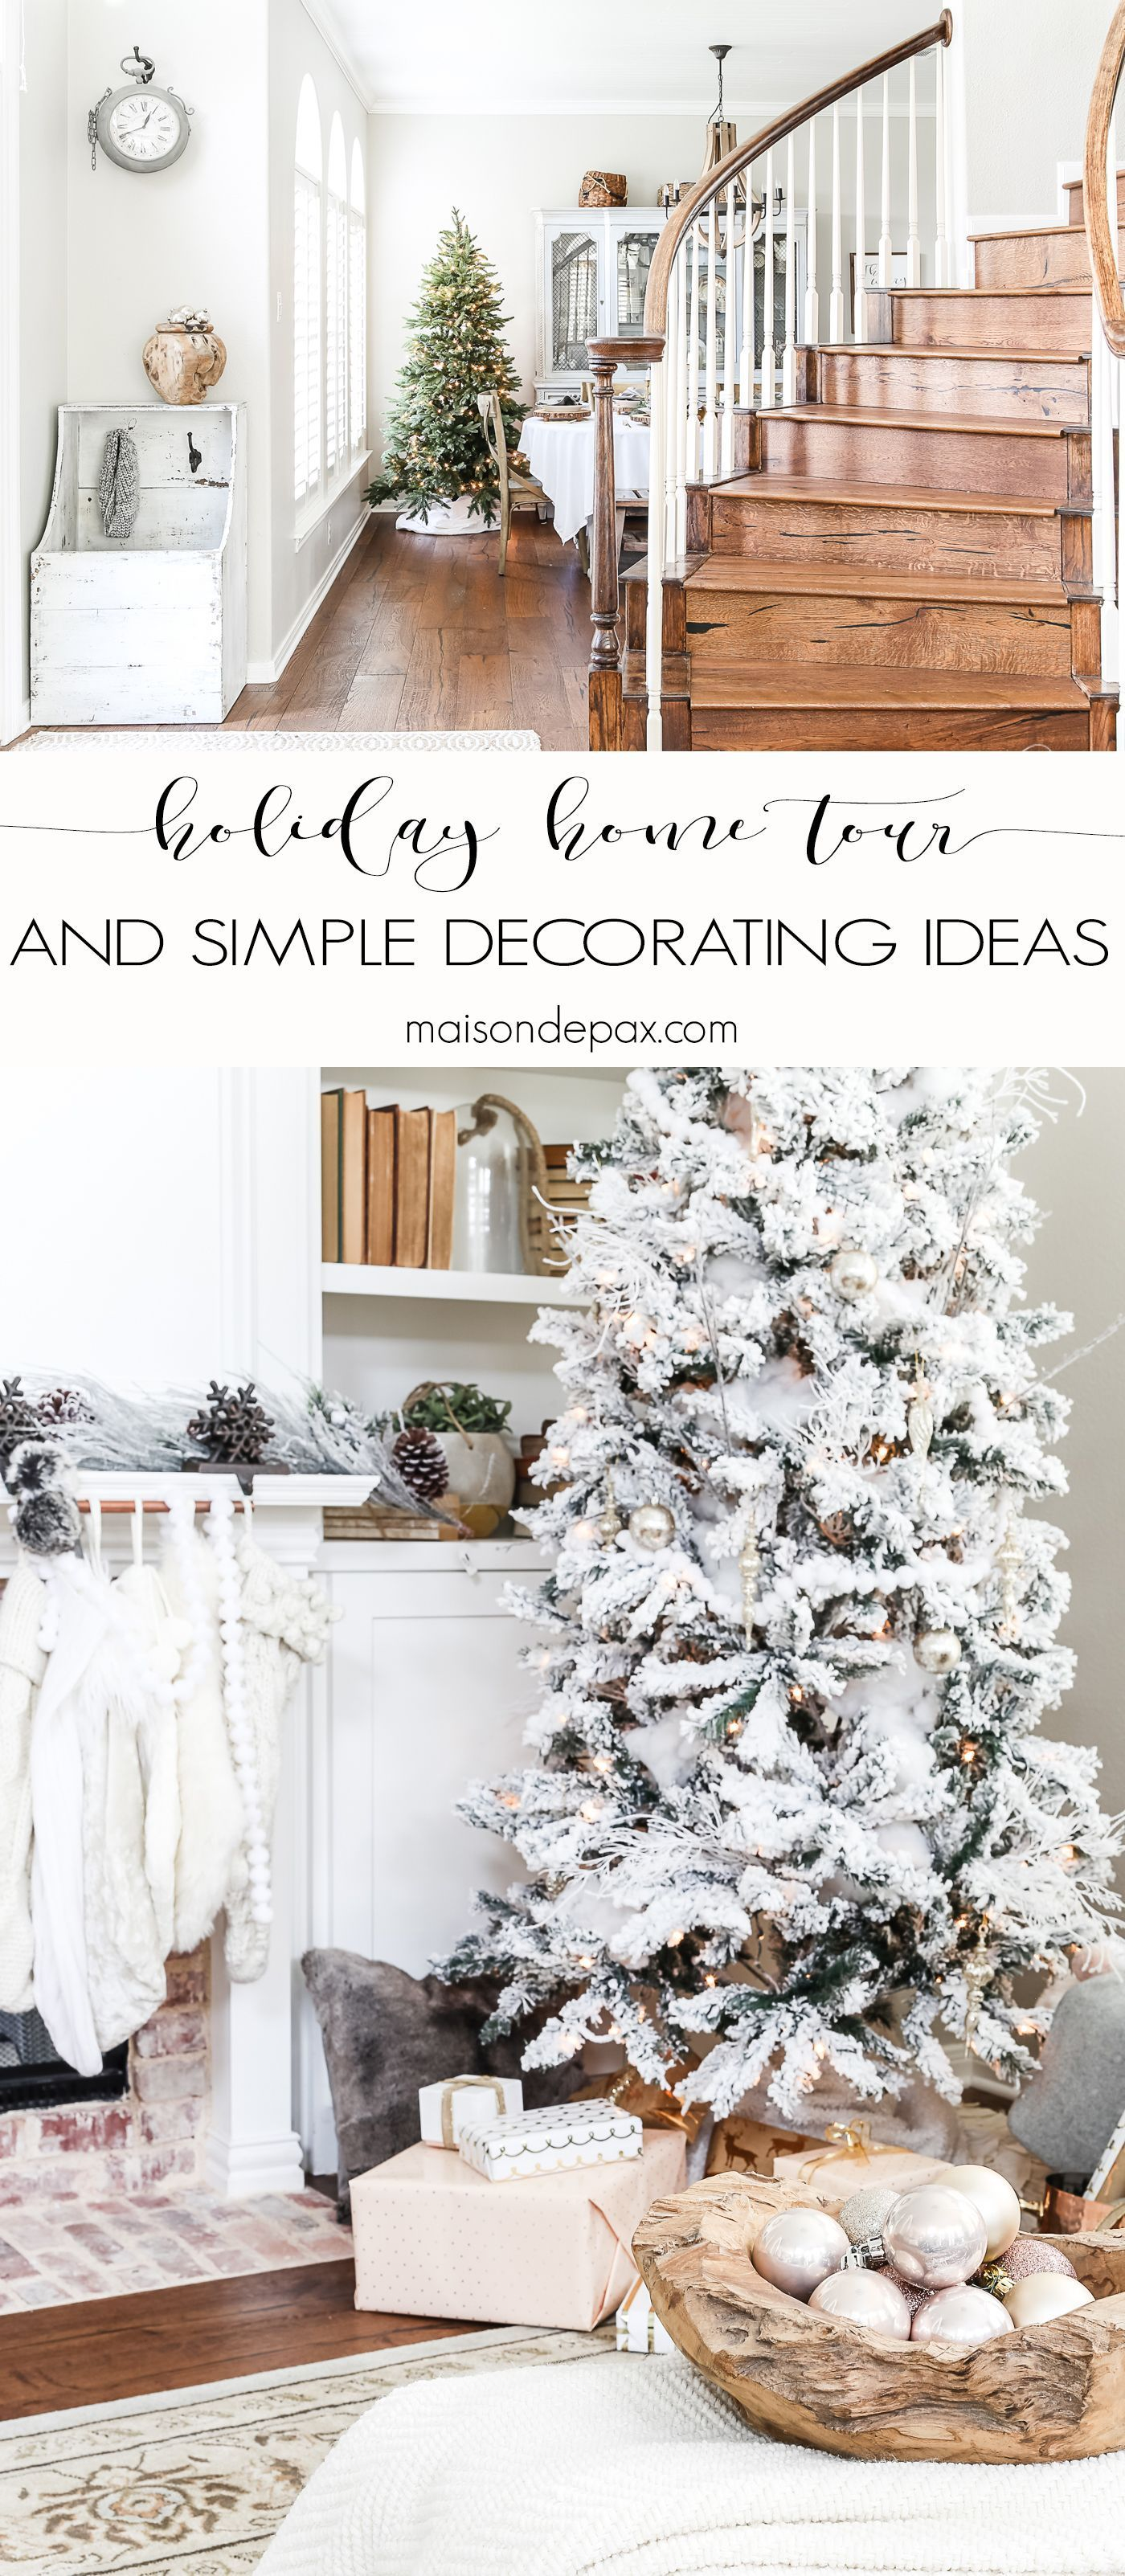 Simple Holiday Decorating: Christmas Home Tour | Best Home ...